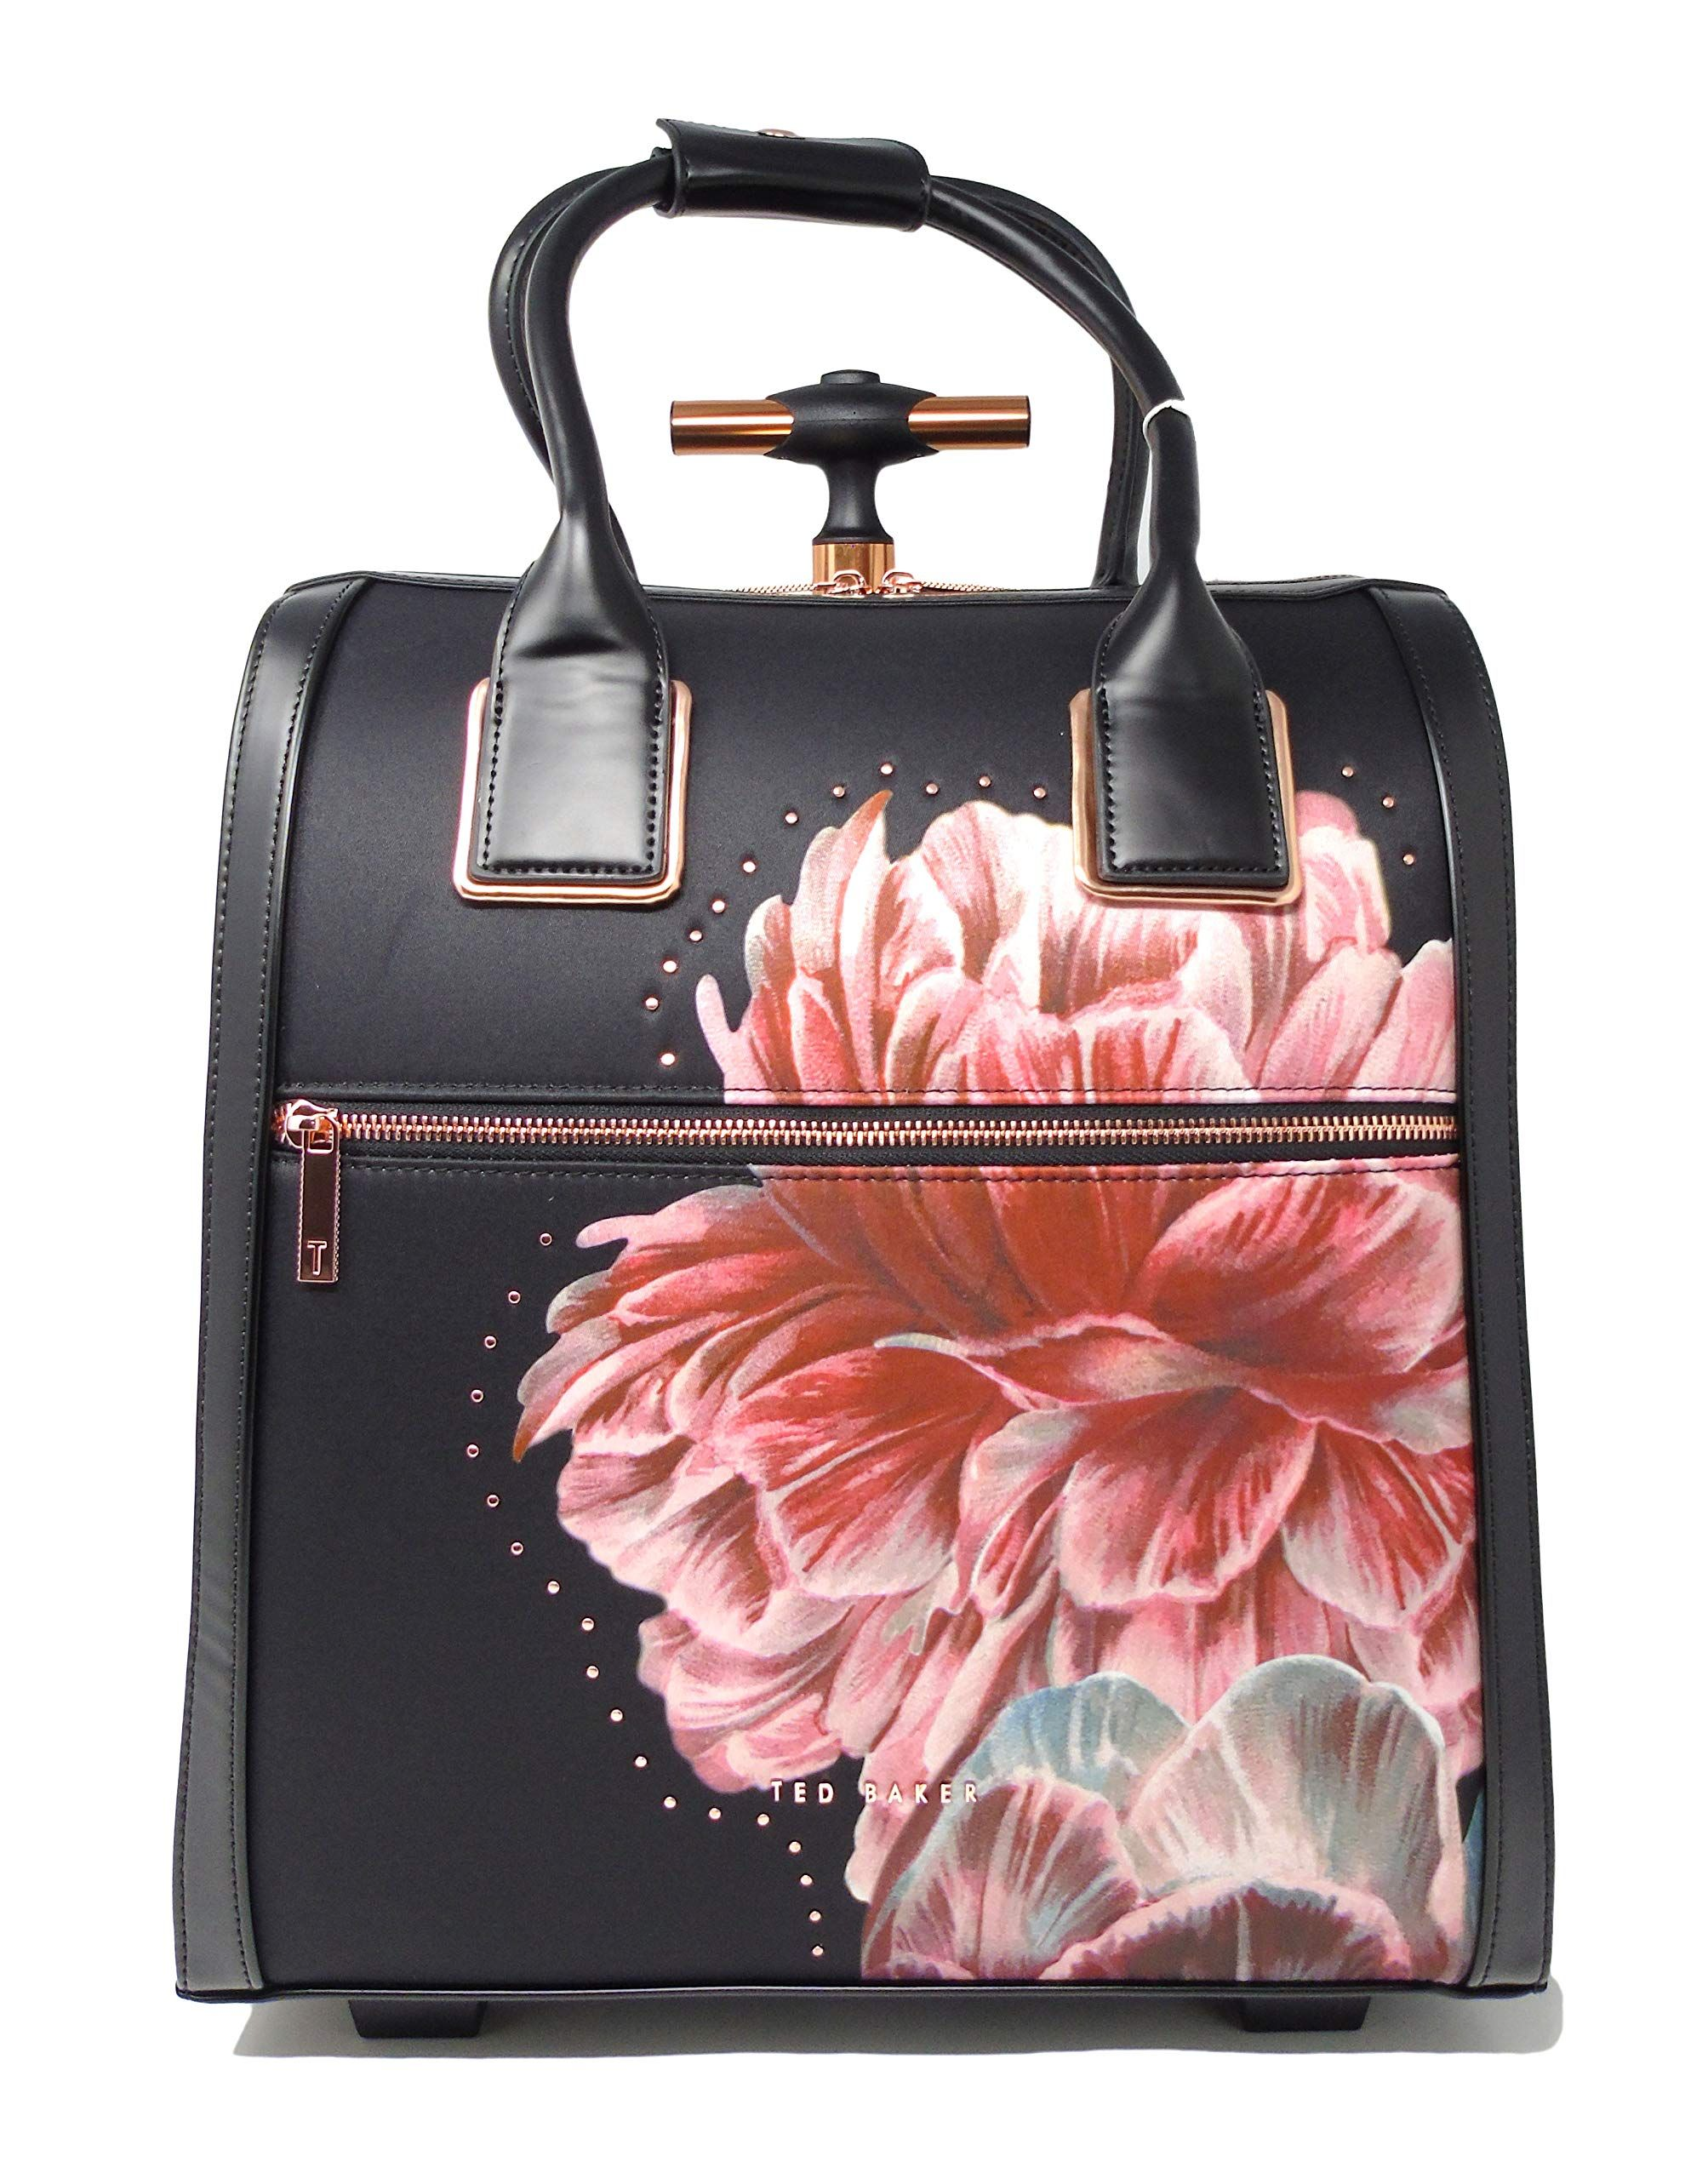 e2e8ae02f Ted Baker Women's Leillaa Black One Size Extendable handle & 2 rolling  wheels Ted Baker